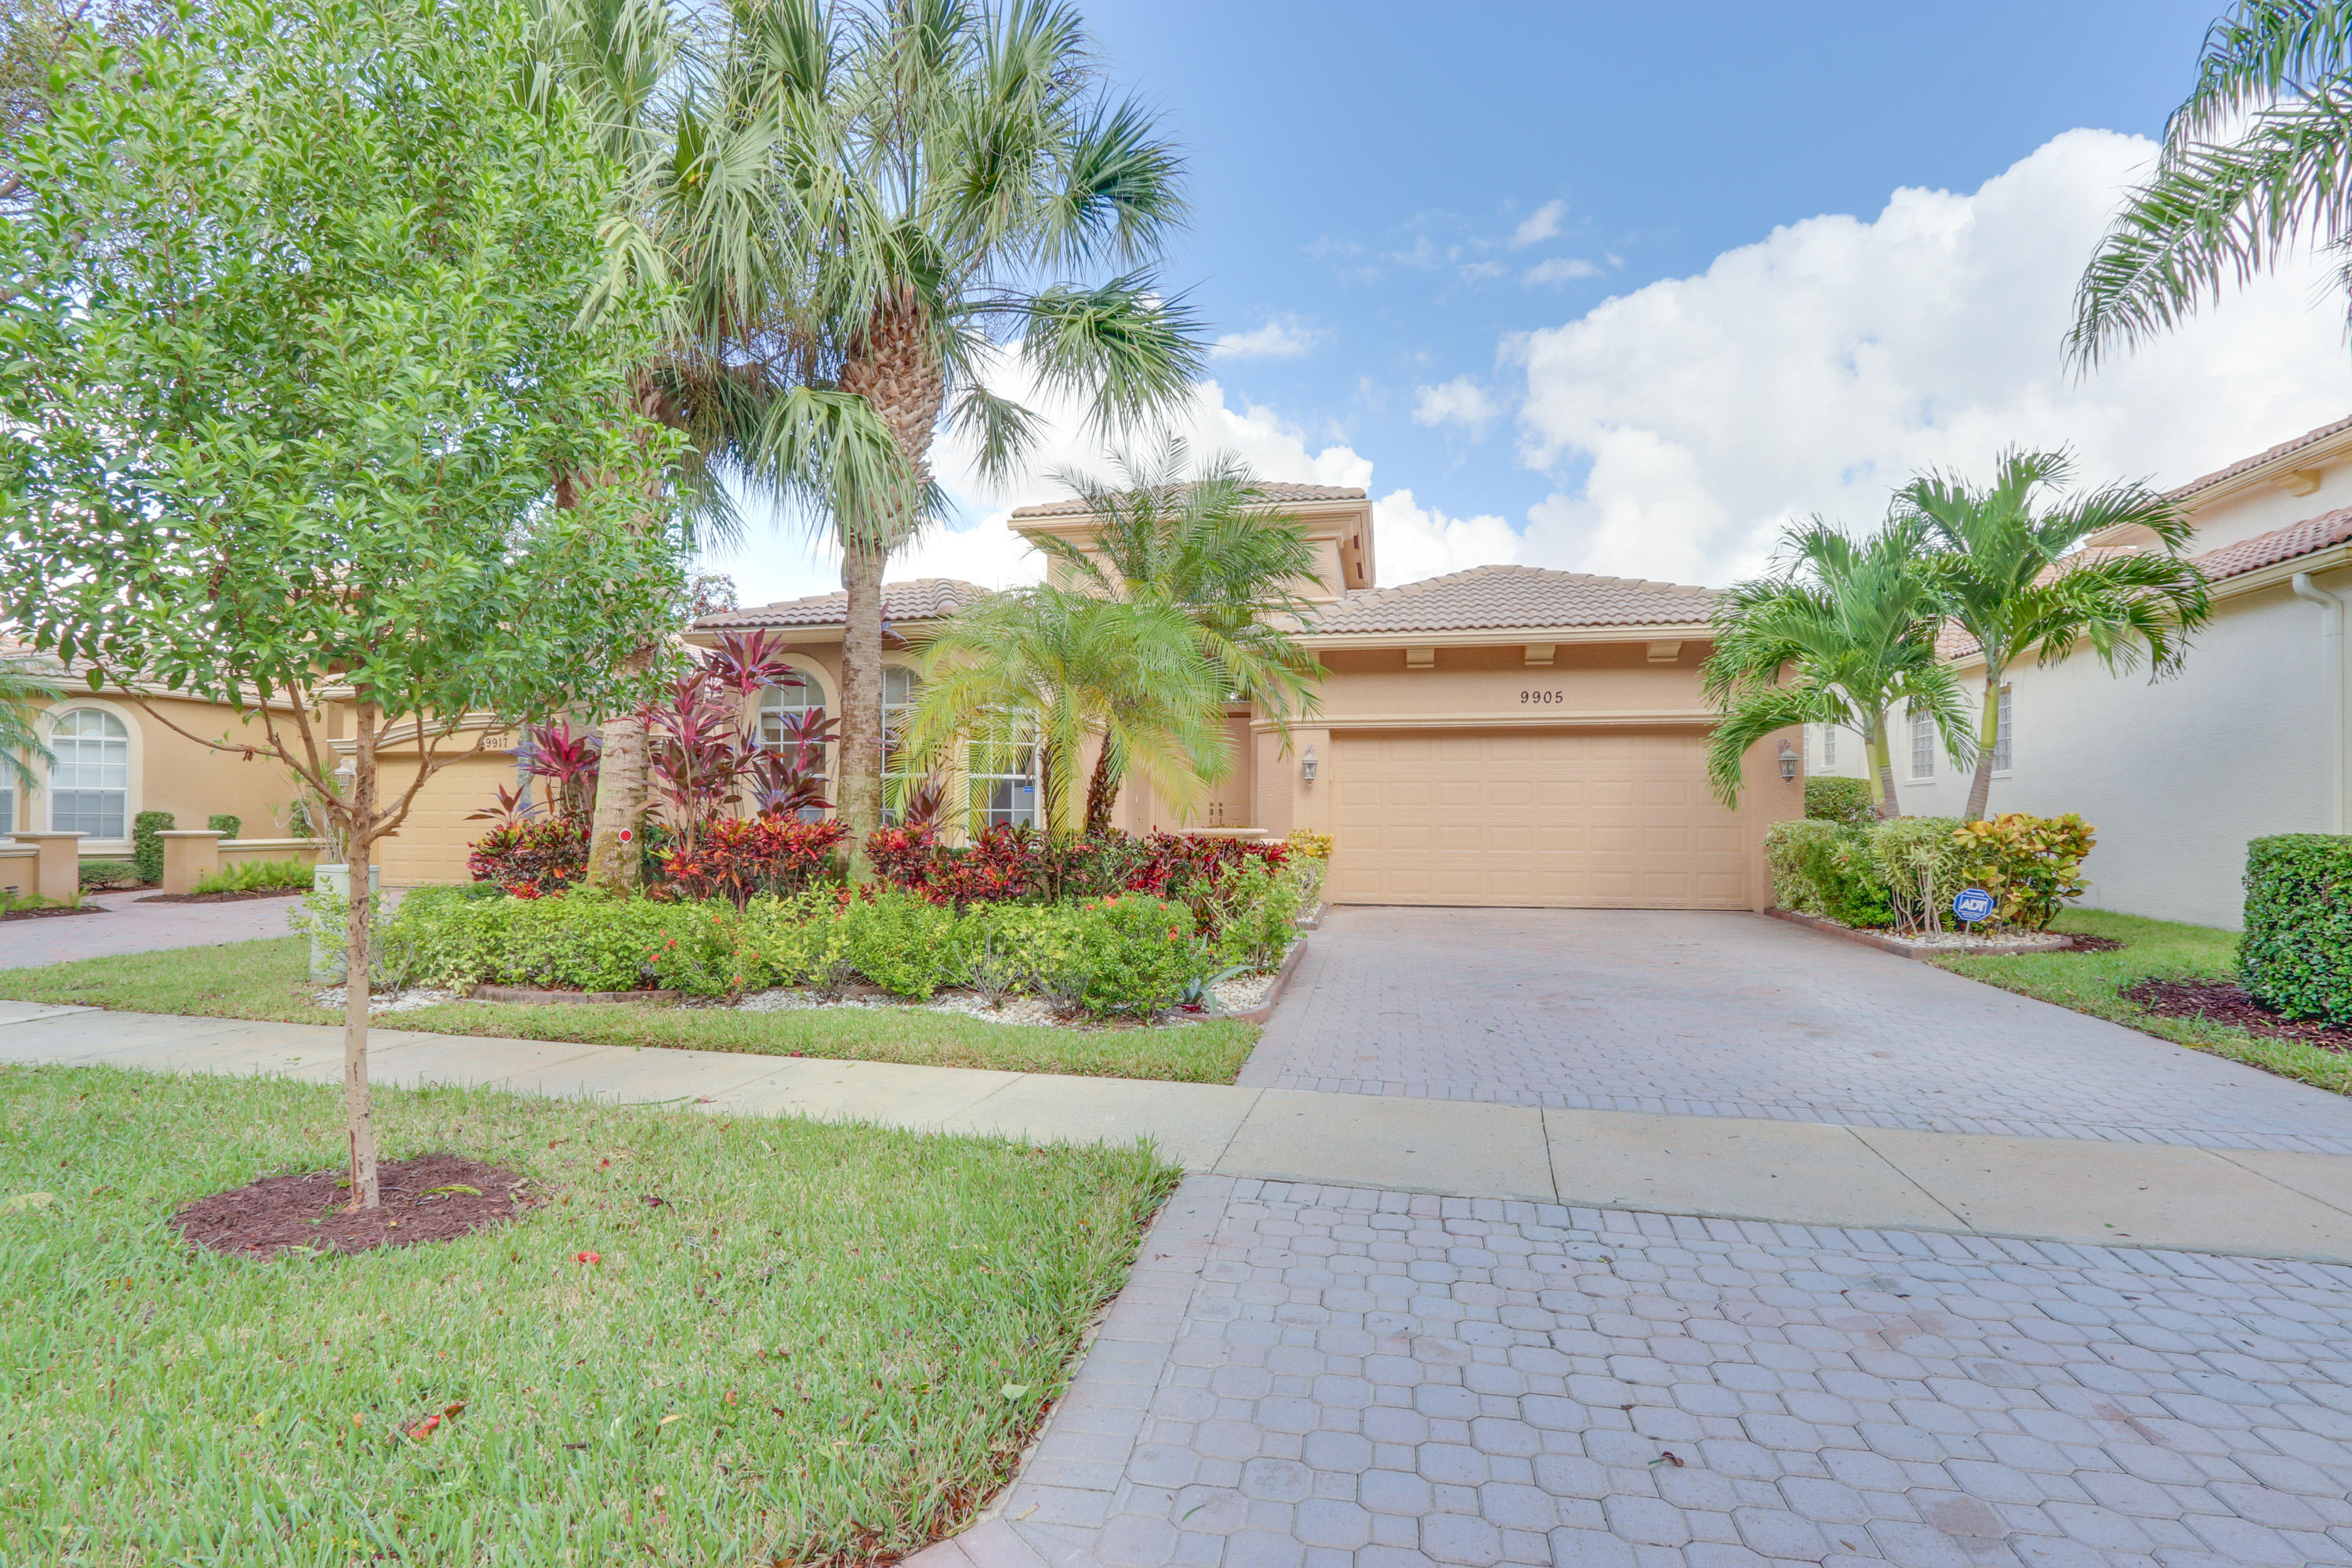 BUENA VIDA home 9905 Via Grande Wellington FL 33411